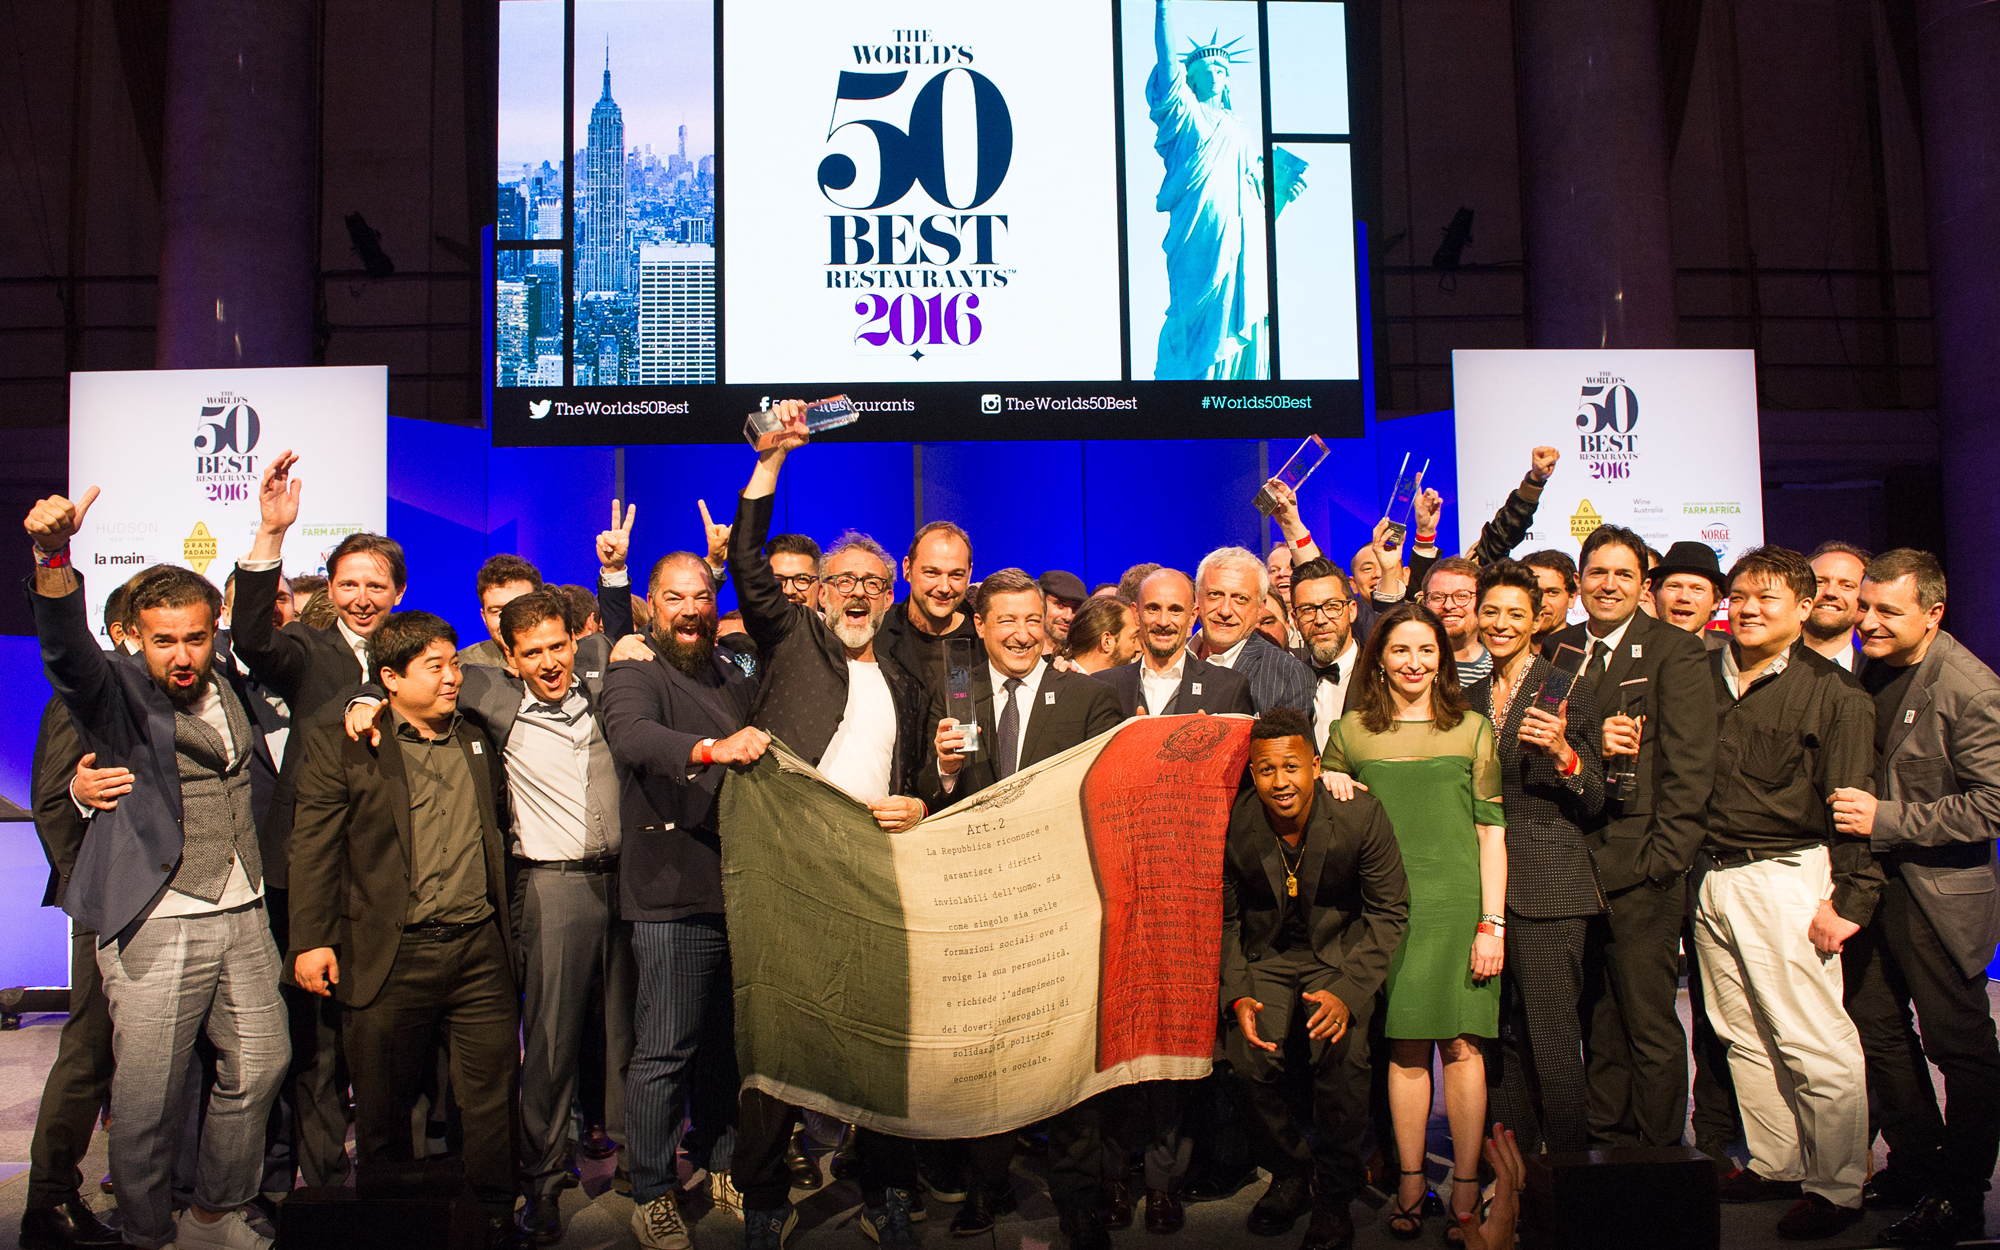 Here Are The World's 50 Best Restaurants For 2016